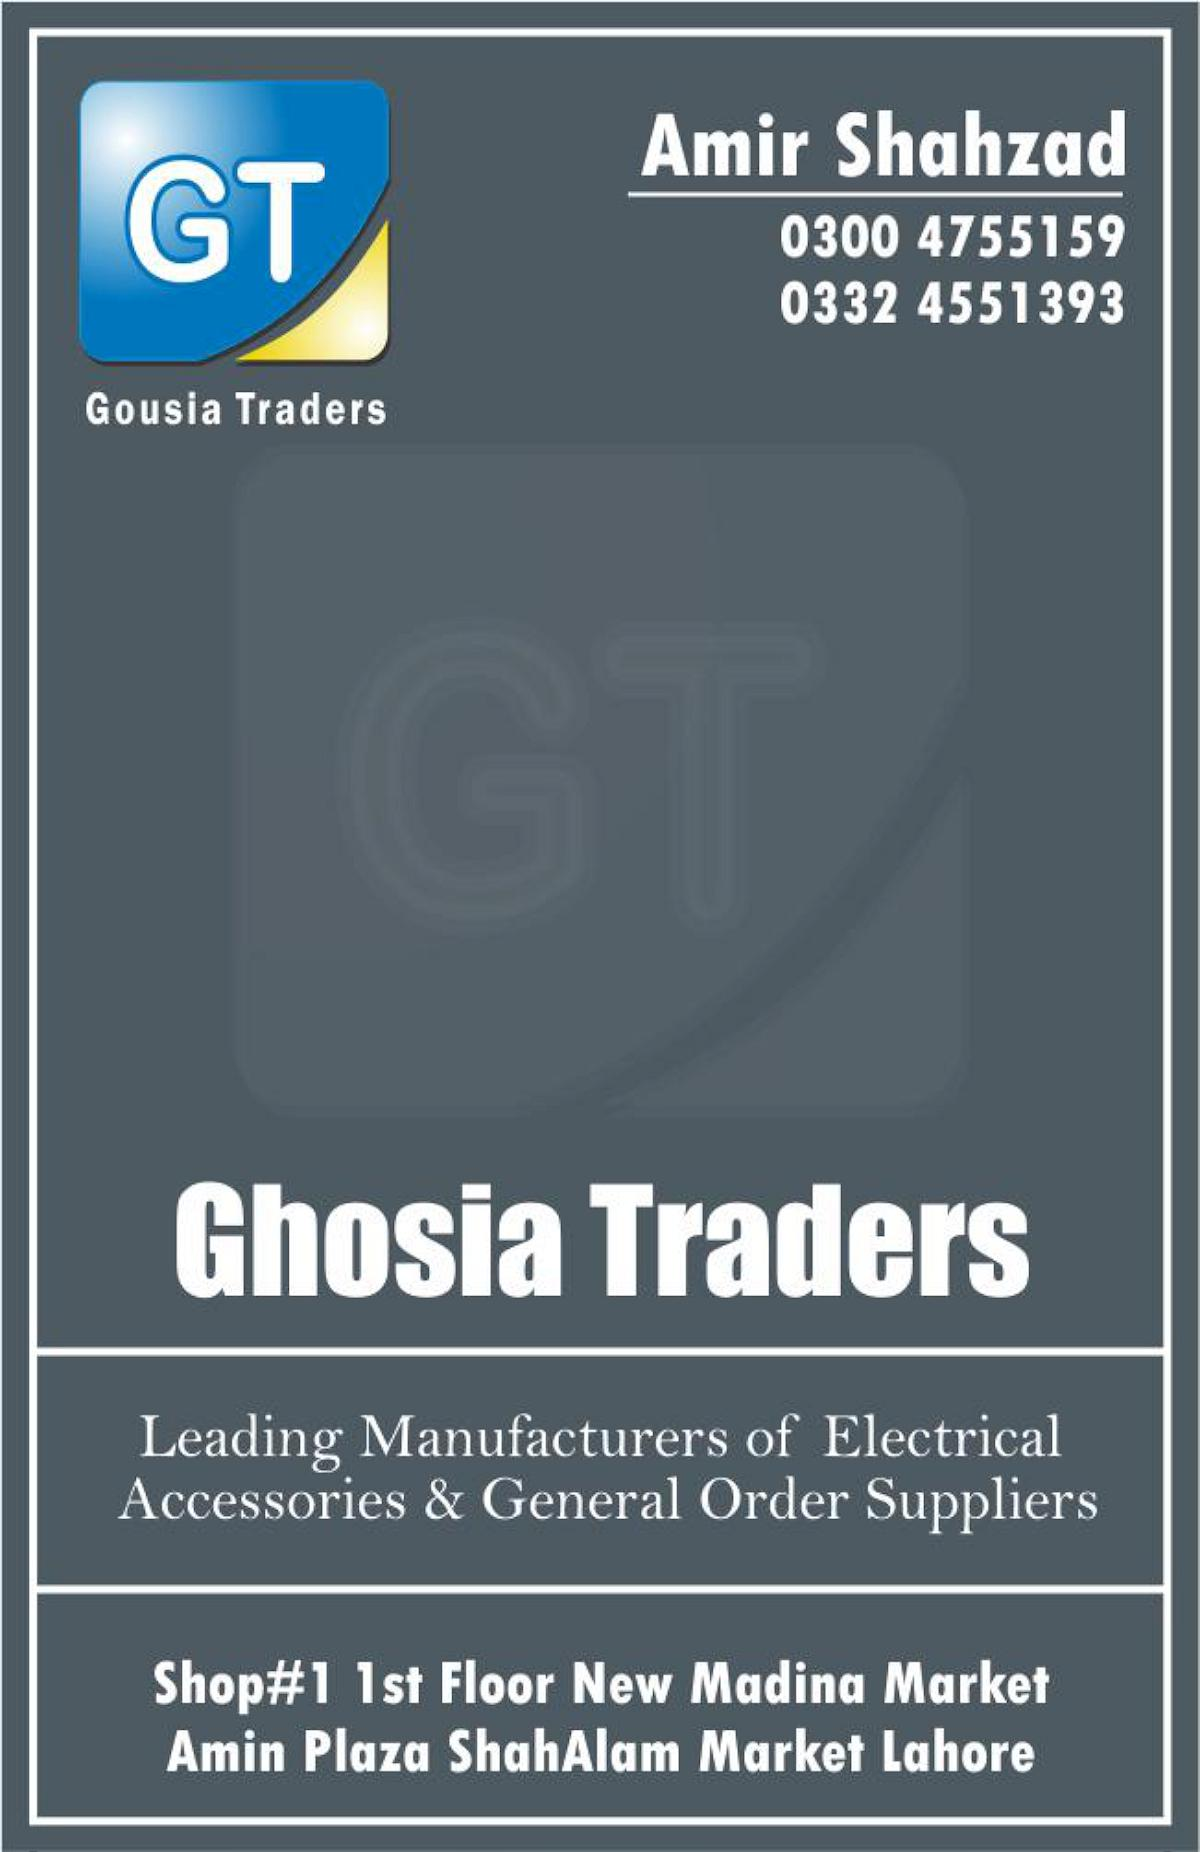 ghosia-traders-business-card